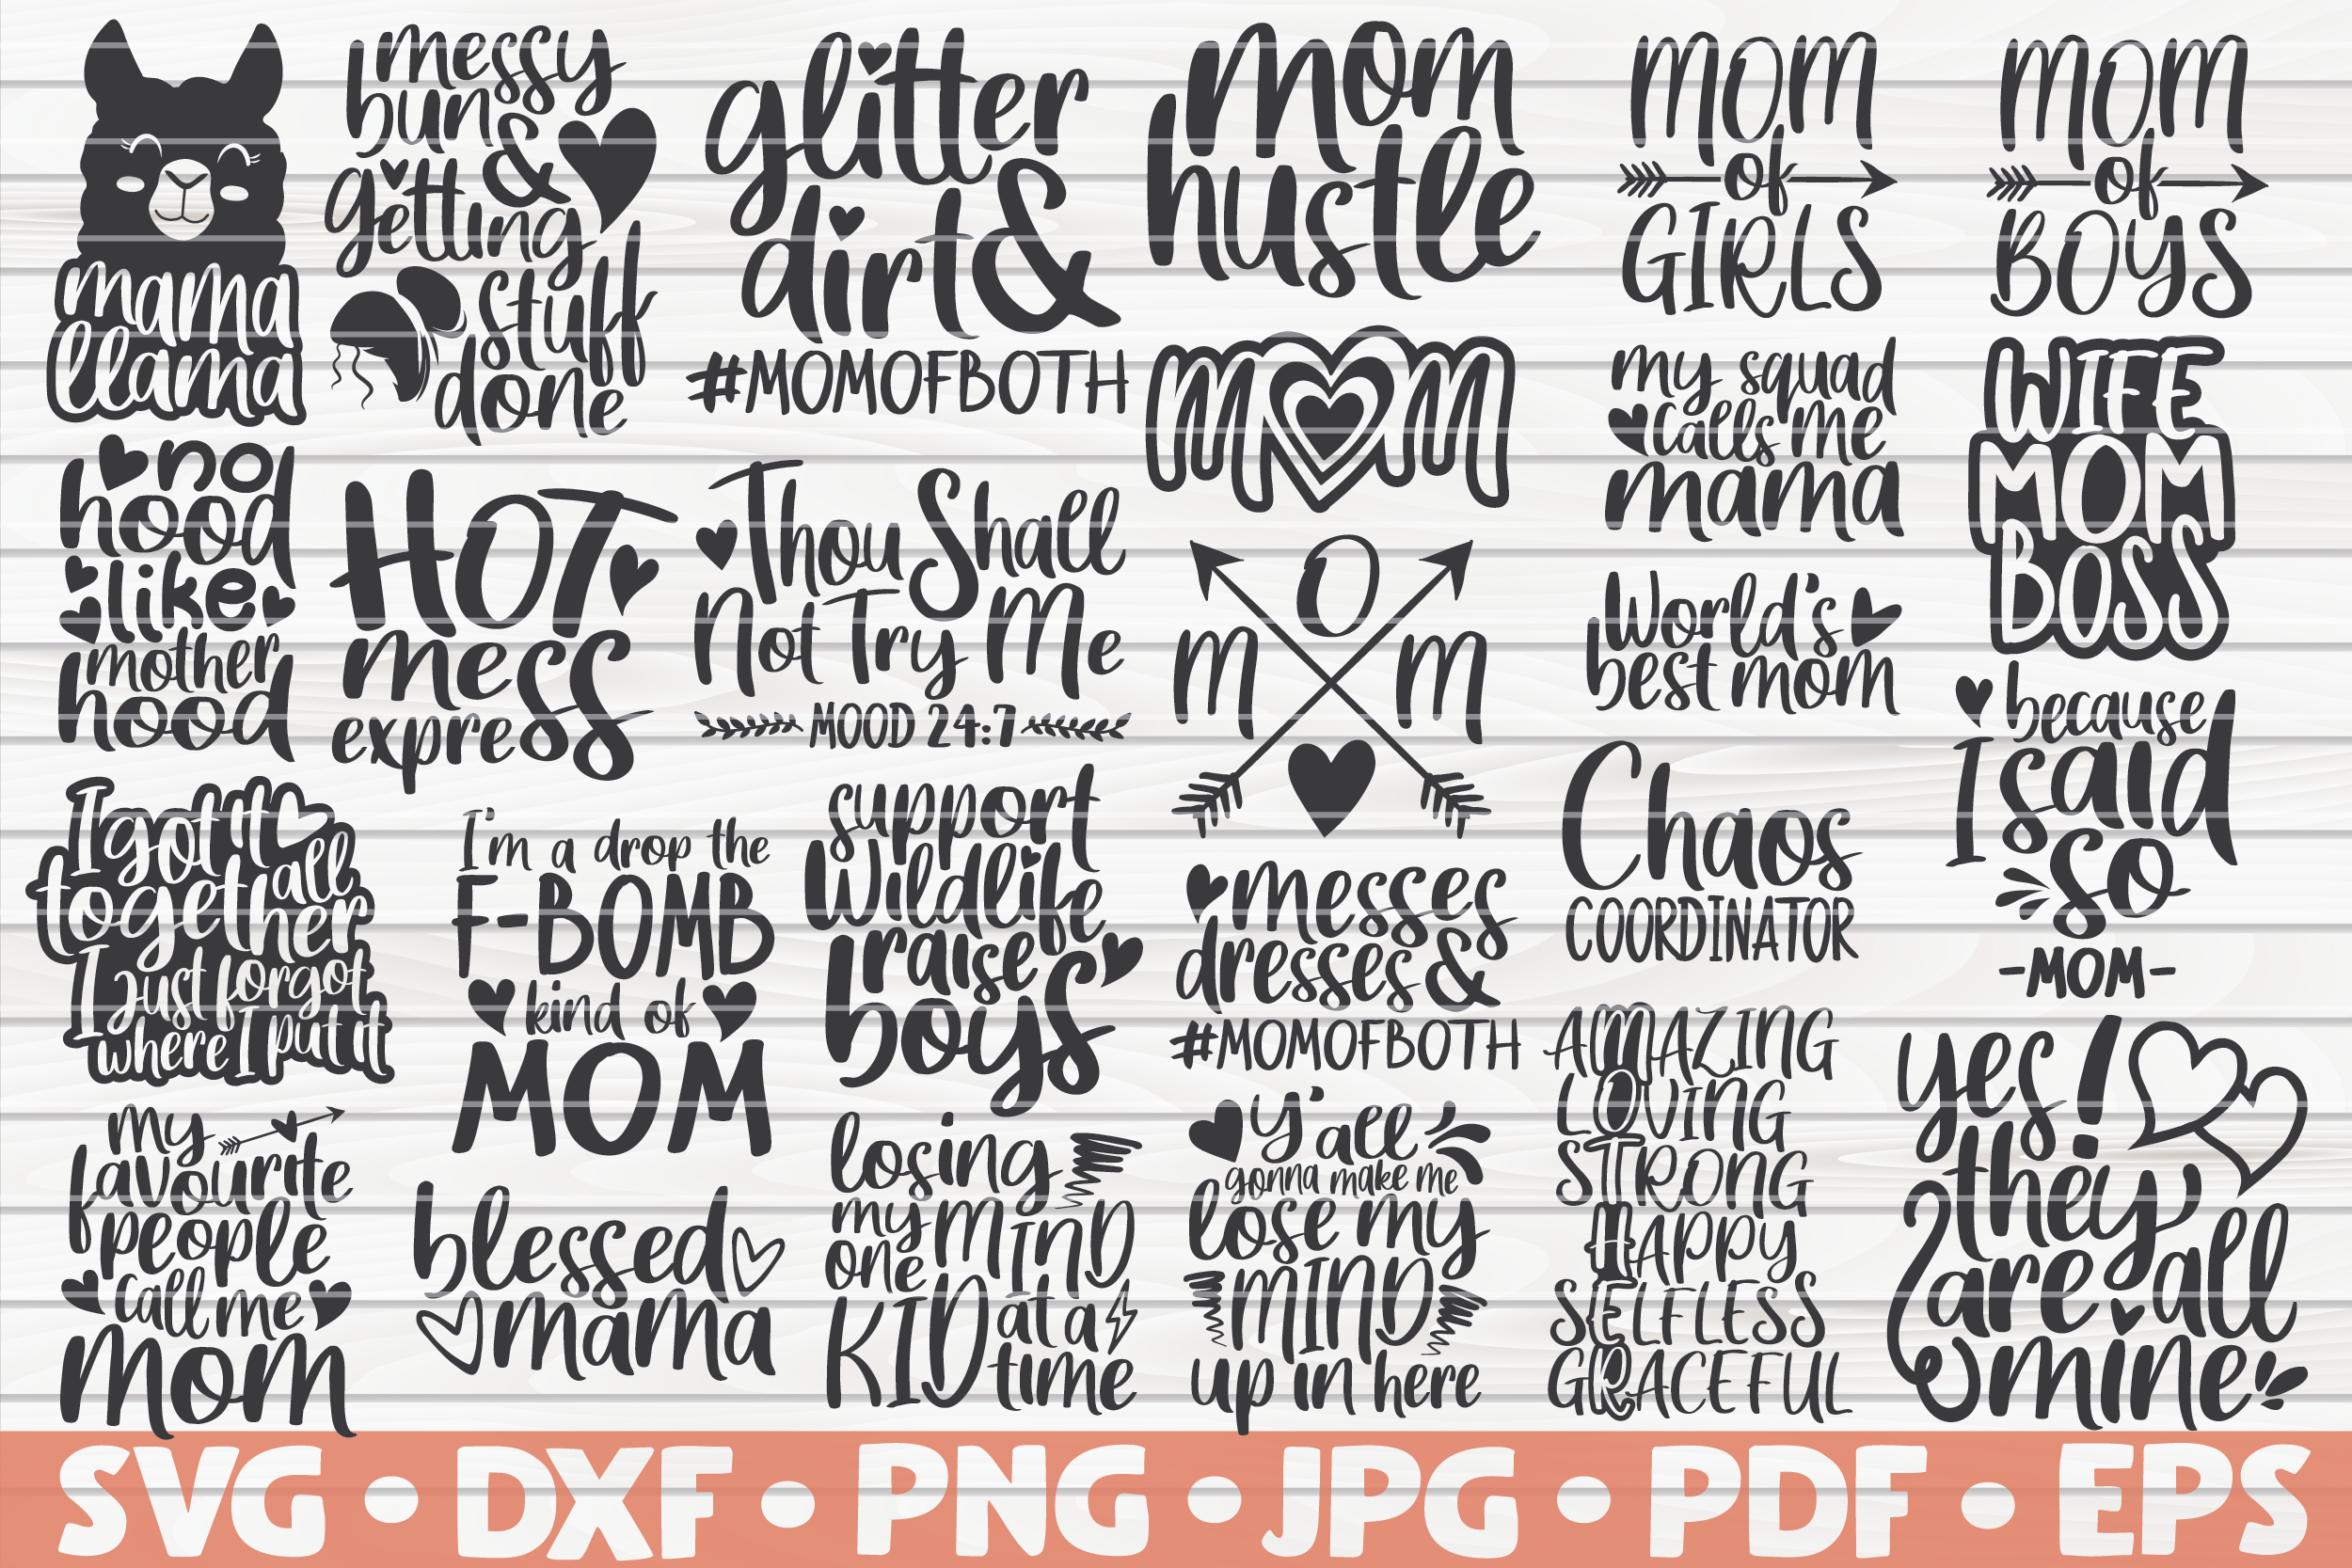 Download Free Mom Quotes Bundle For Mother S Day Graphic By Mihaibadea95 for Cricut Explore, Silhouette and other cutting machines.